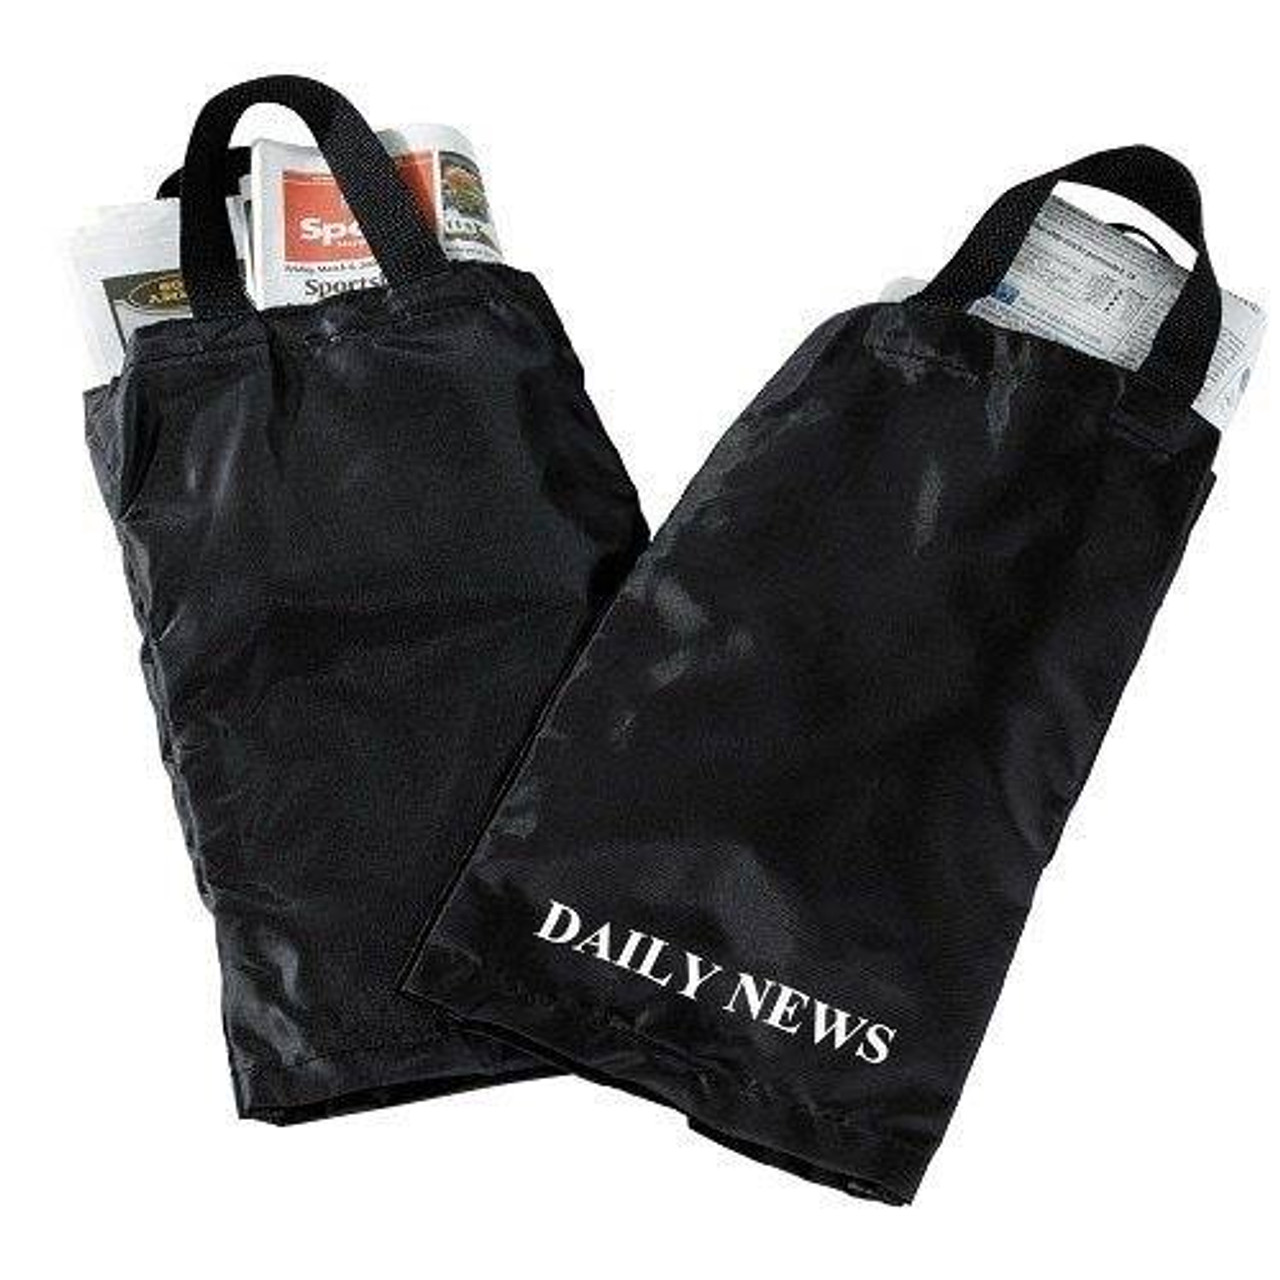 HOSPITALITY 1 SOURCE AMENITY BAGS or HOSPITALITY 1 SOURCE or NEWSPAPER BAG or BLACK/WHITE or Daily News